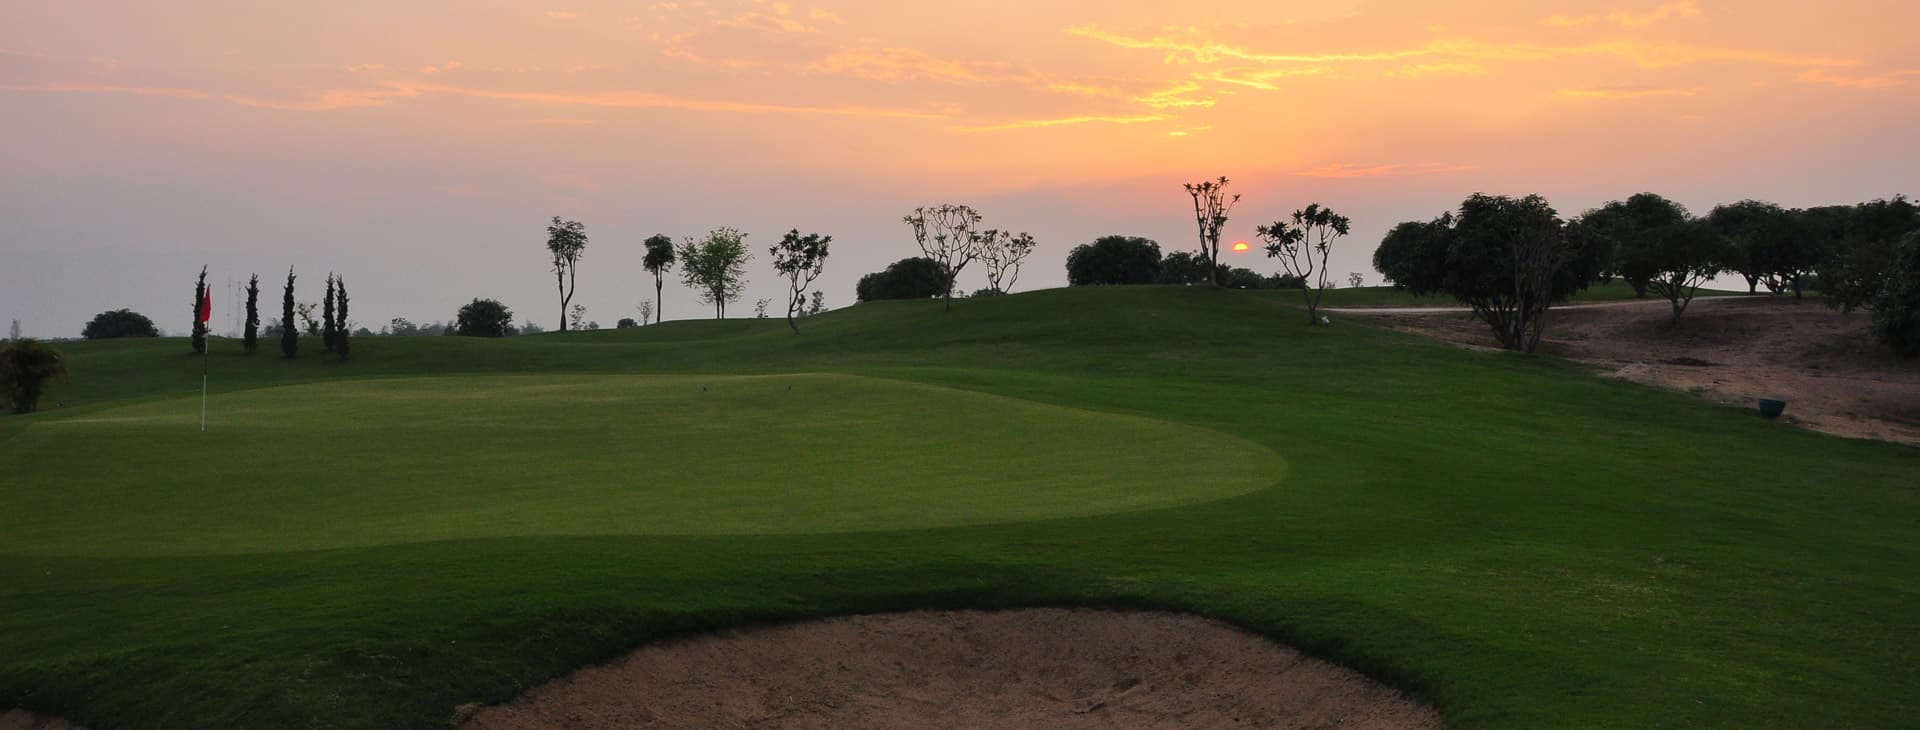 Golf Thailand_Golf Courses_Chiang Mai_Inthanon Golf and Natural Resort